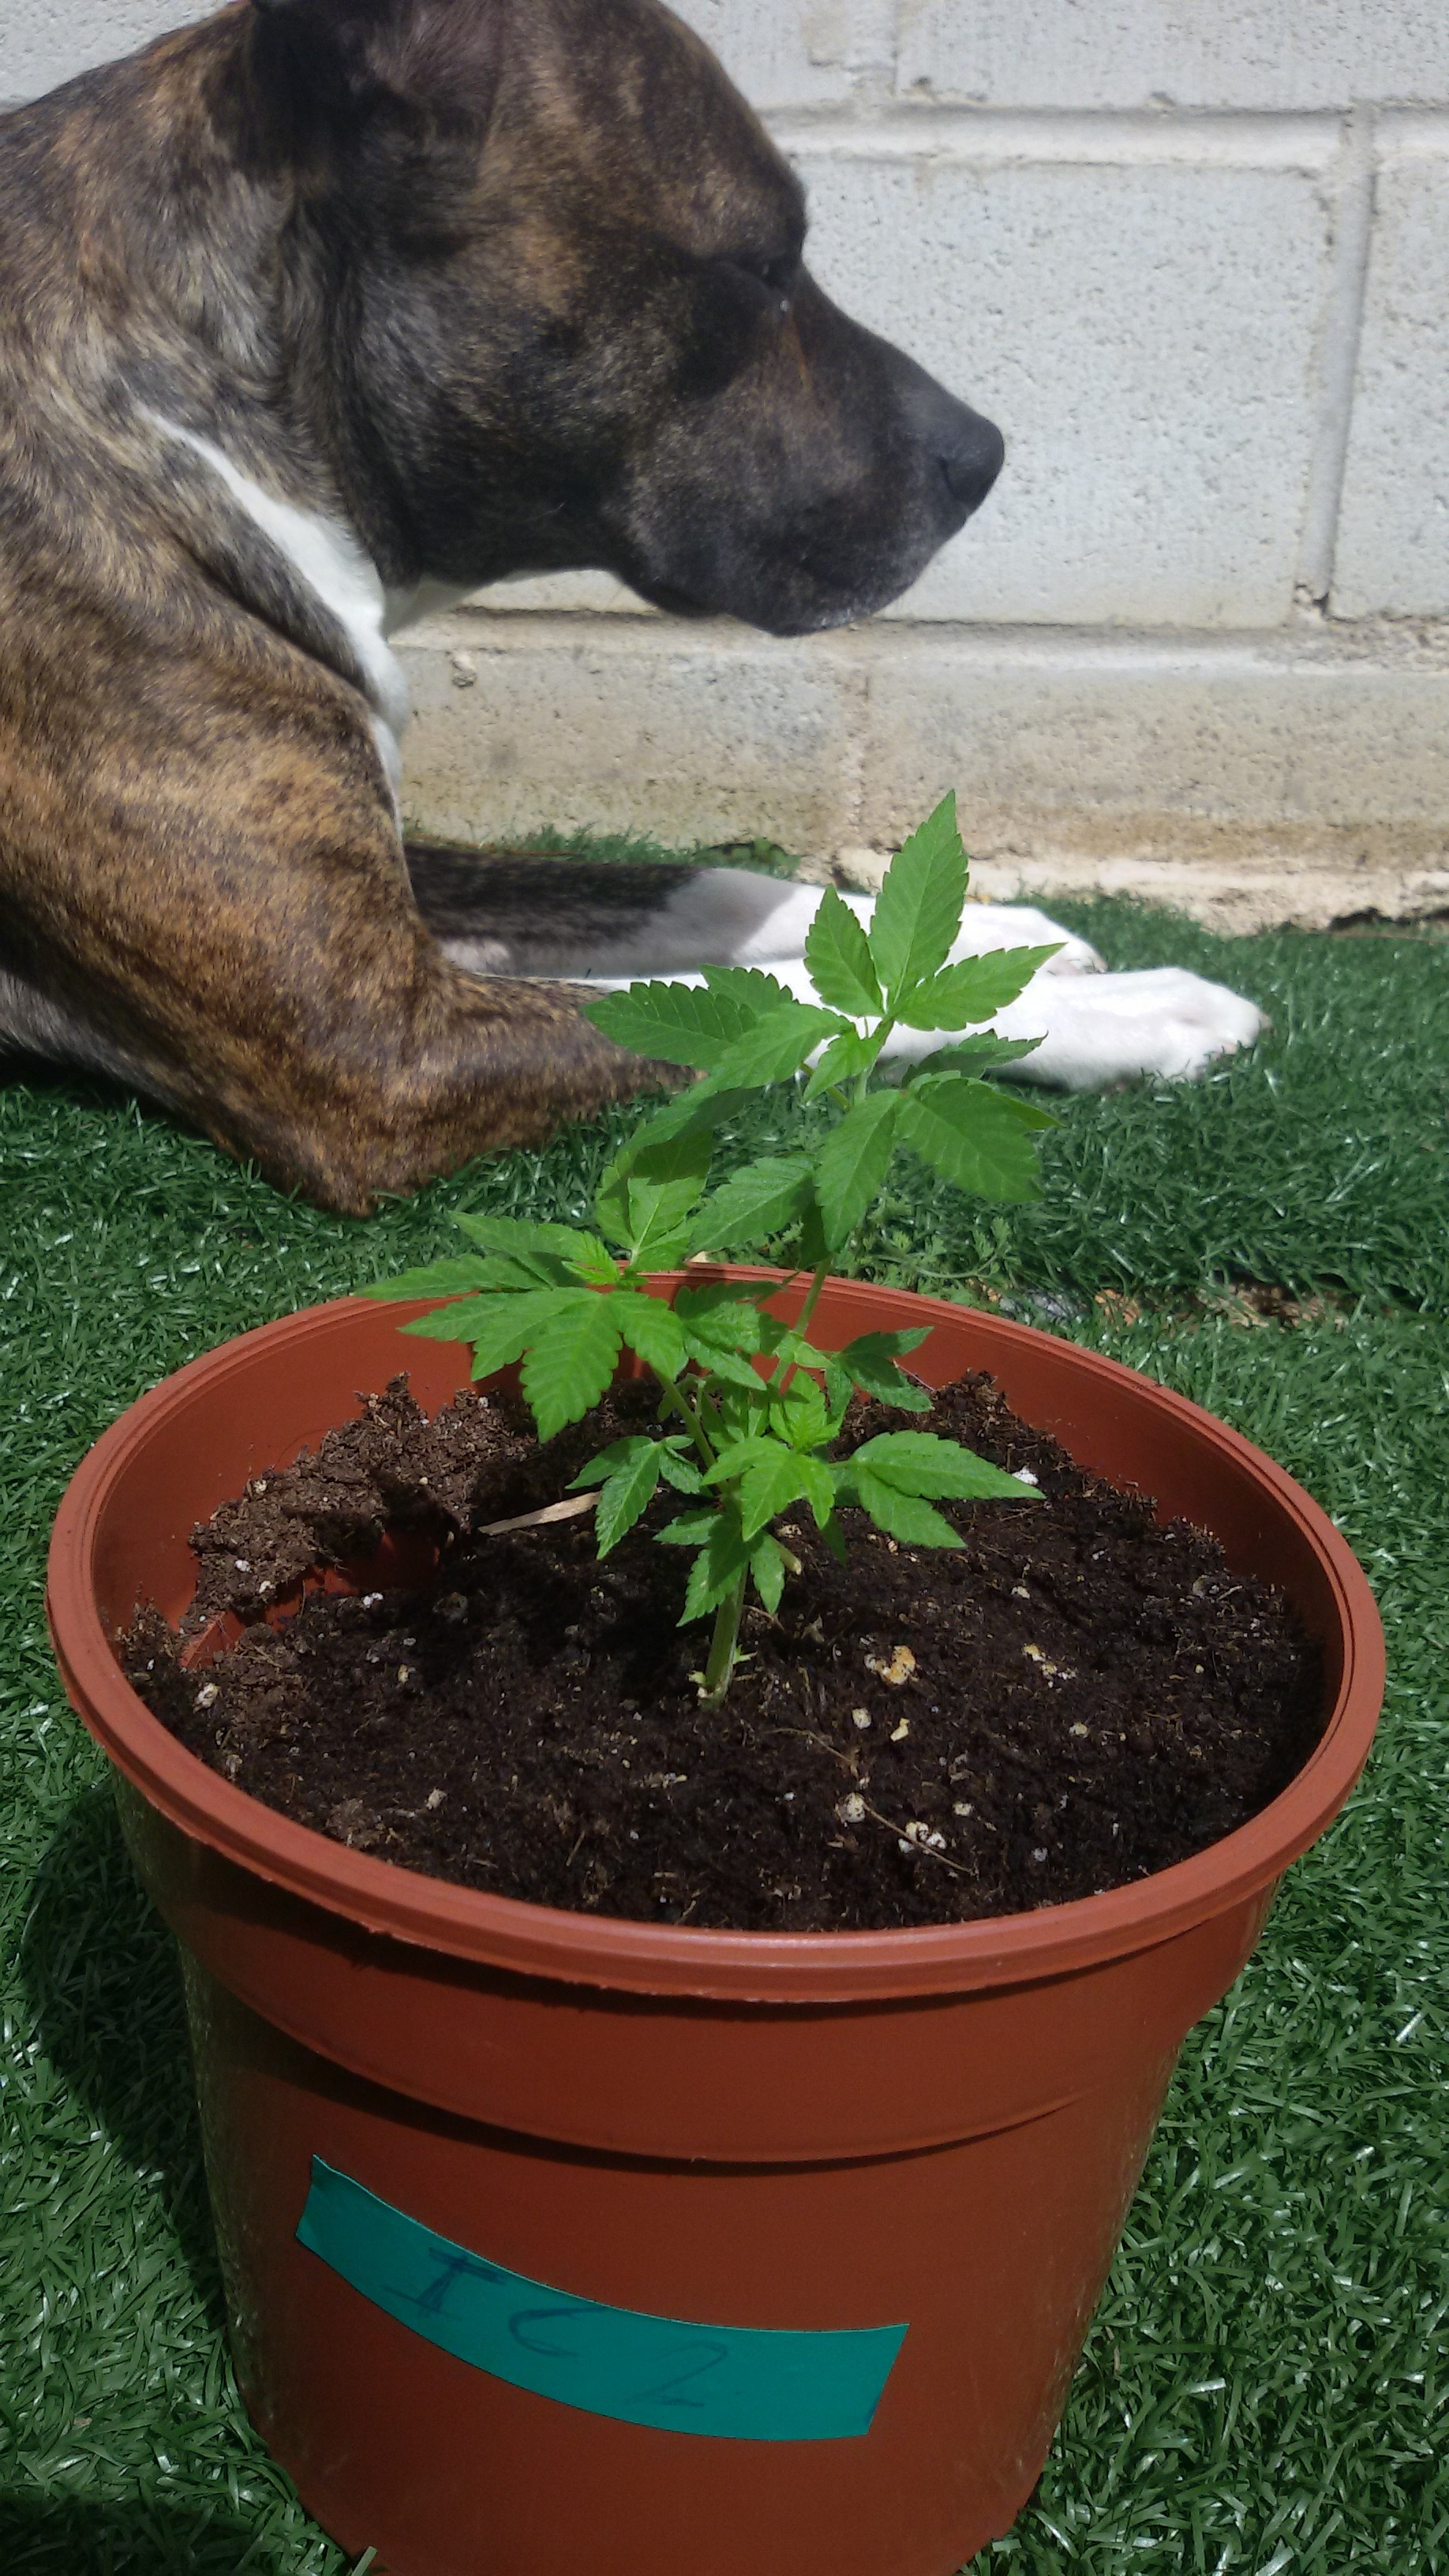 El Brujo a Latigazos ...(Sweet Seeds)+(CannaBooM)(2018) 20180324_132306